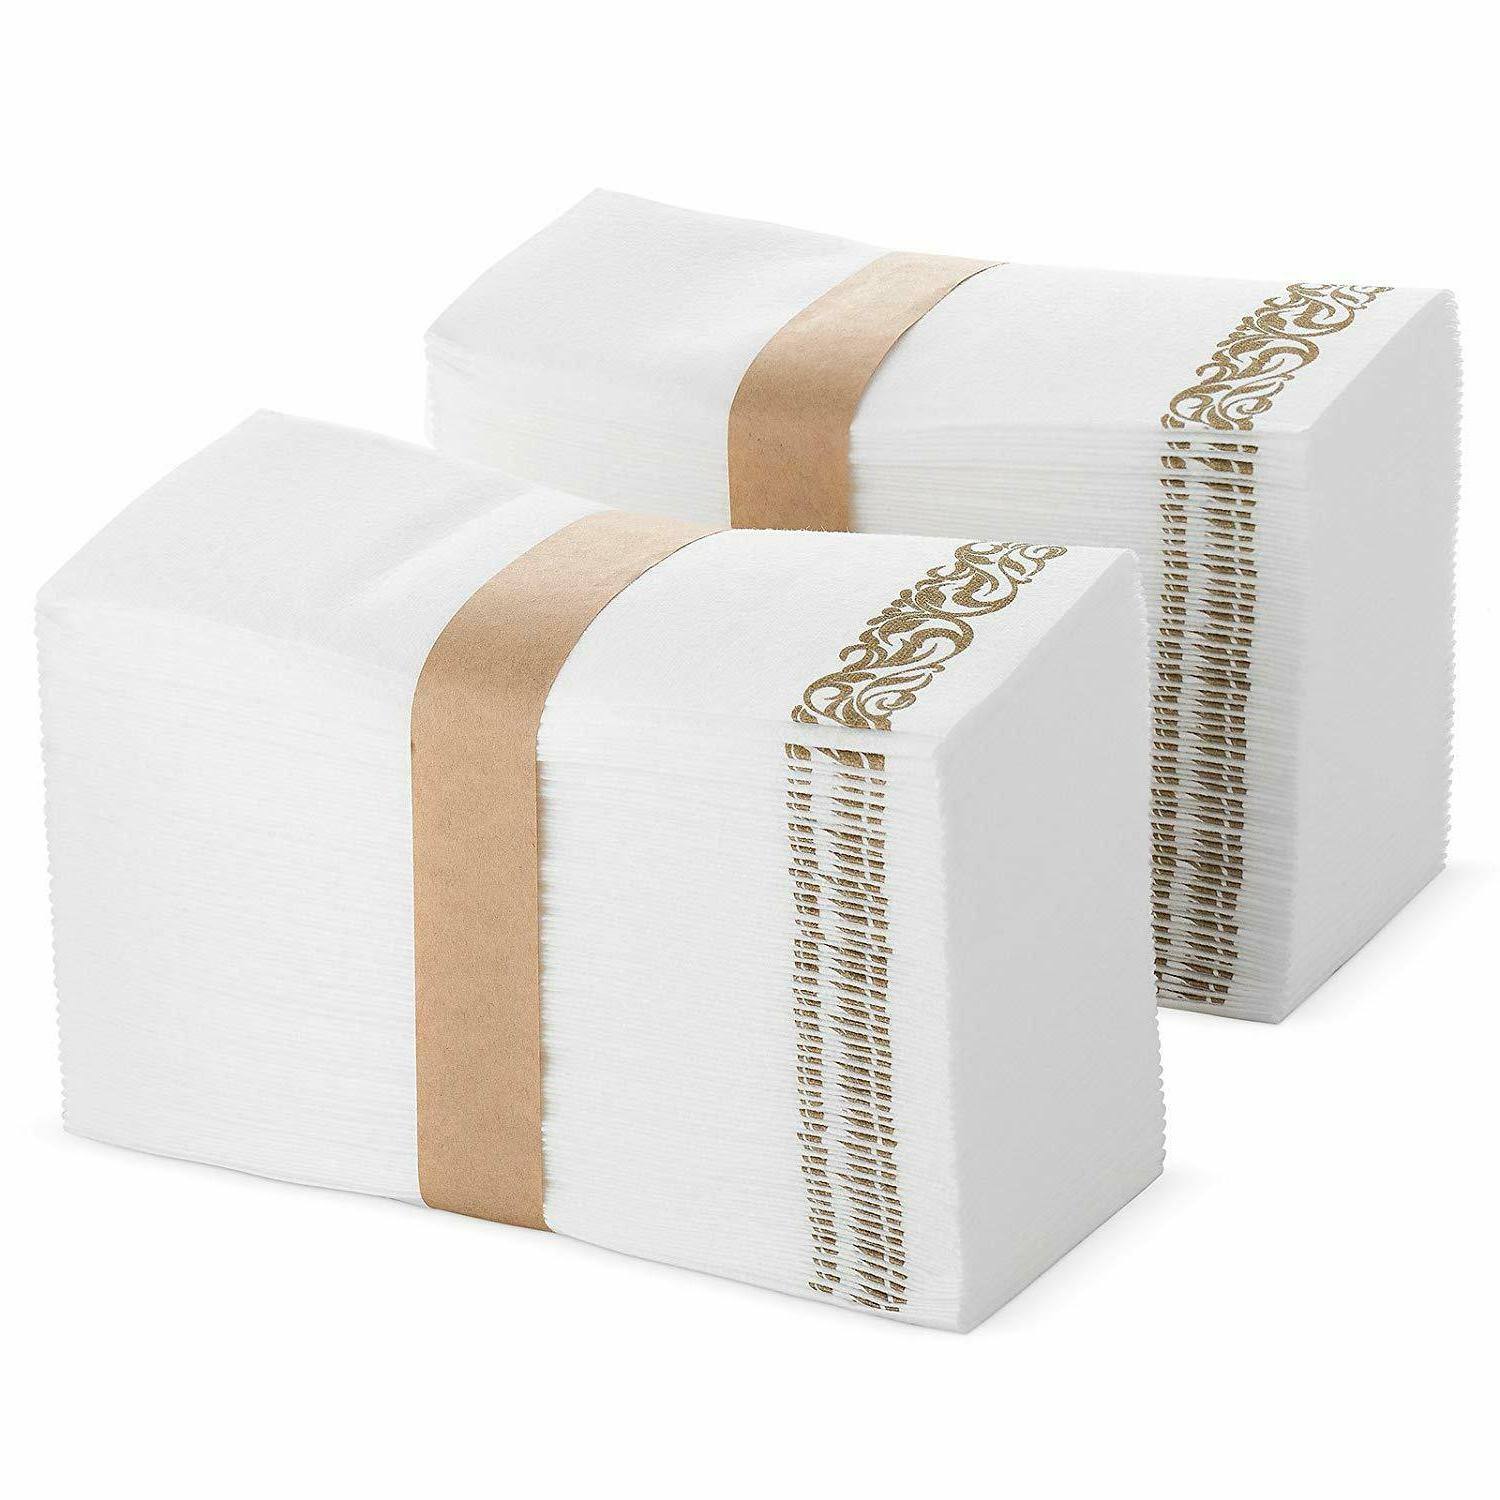 White and Gold Disposable Hand Towels & Decorative Bathroom